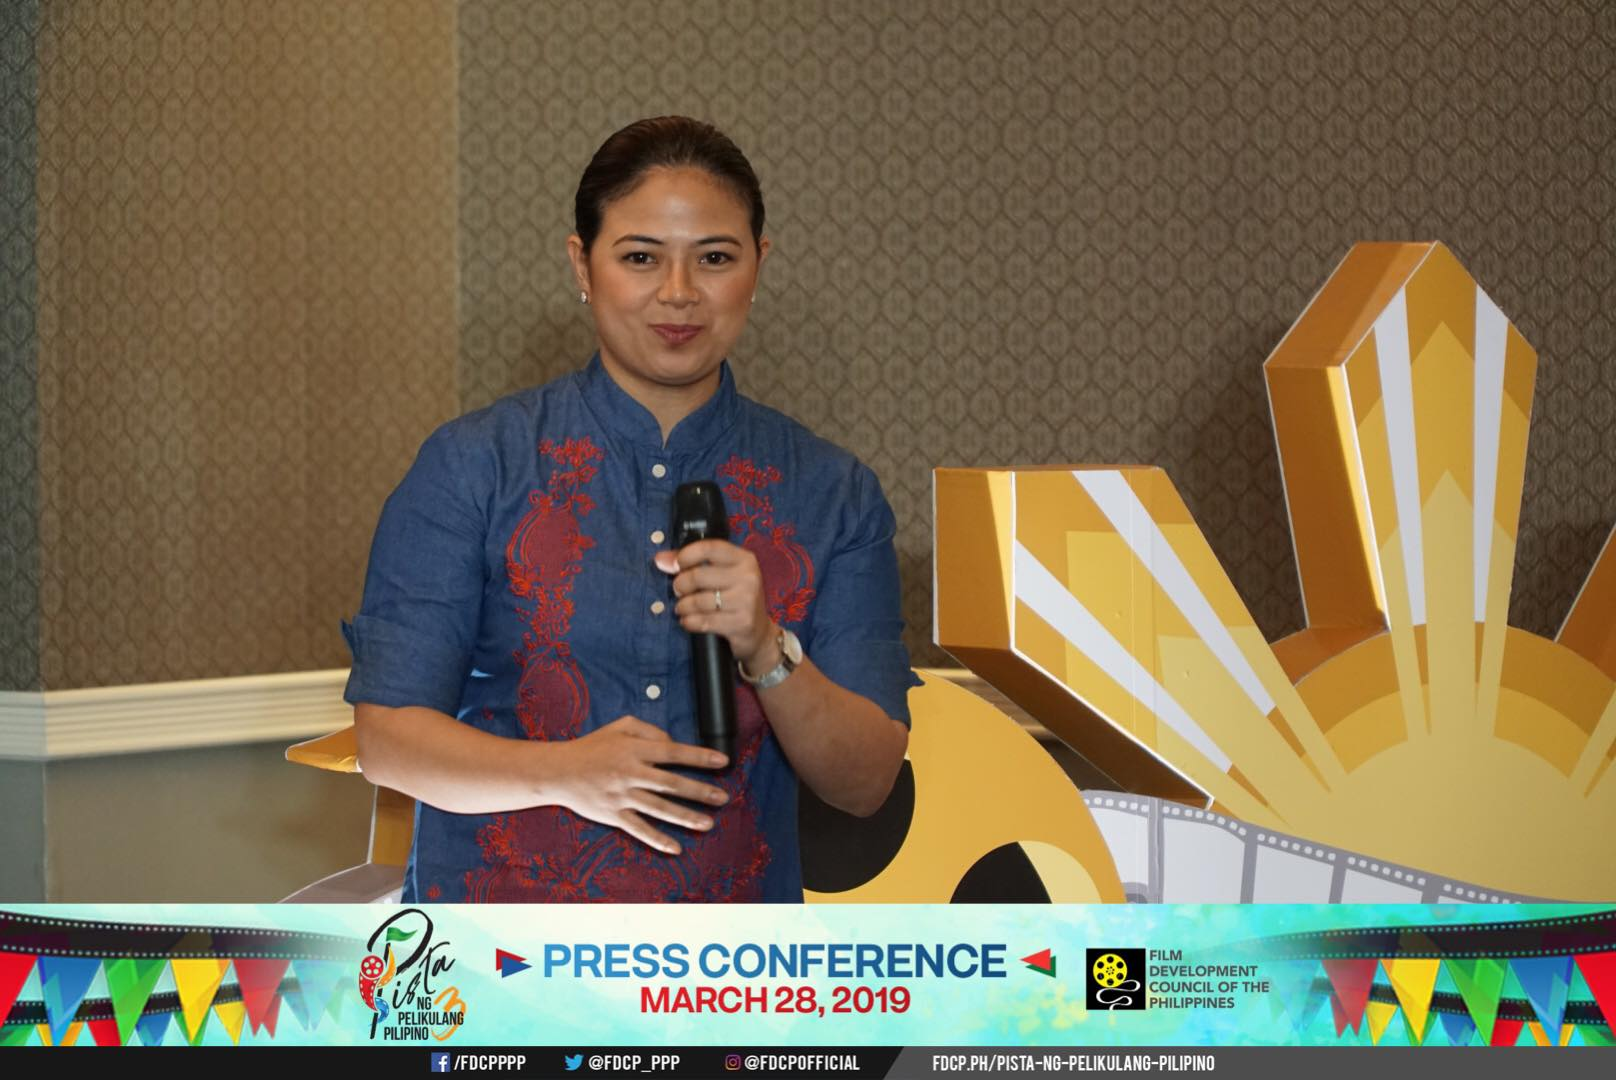 FDCP Chairperson and CEO Mary Liza Diño